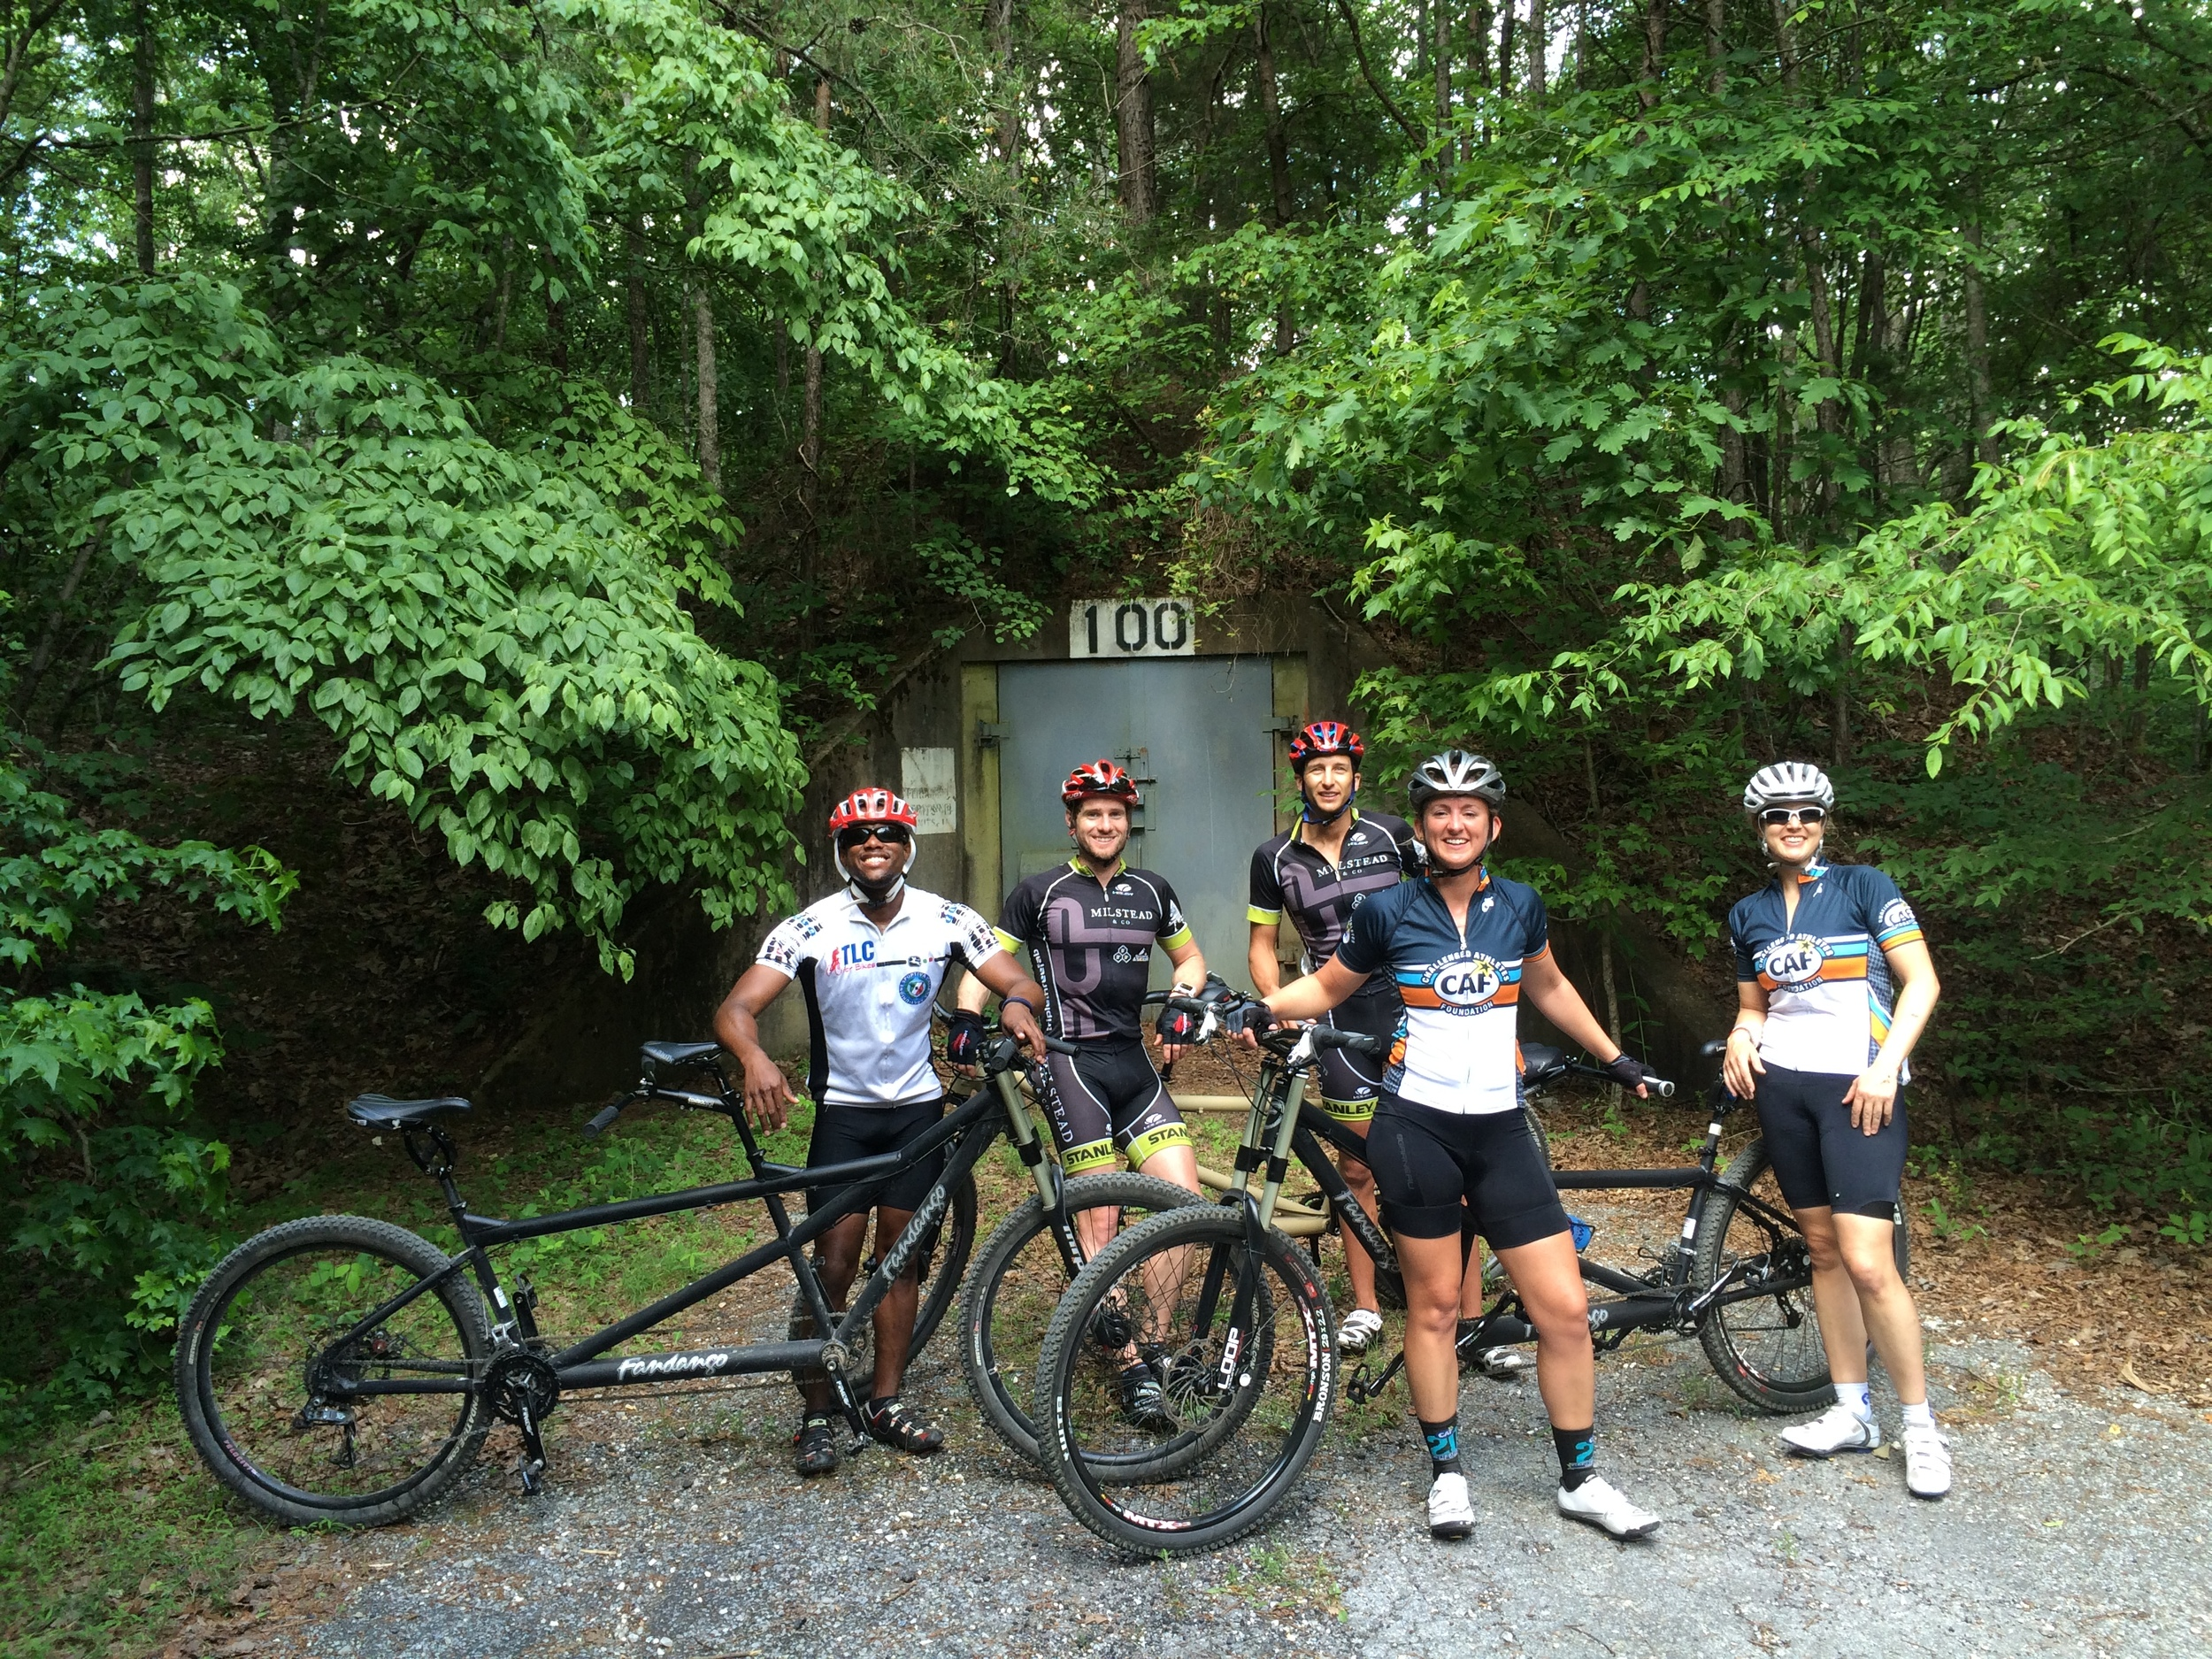 Mountain bike tandem riding after Nationals in Chattanooga was amazing thanks to Greg Miller.